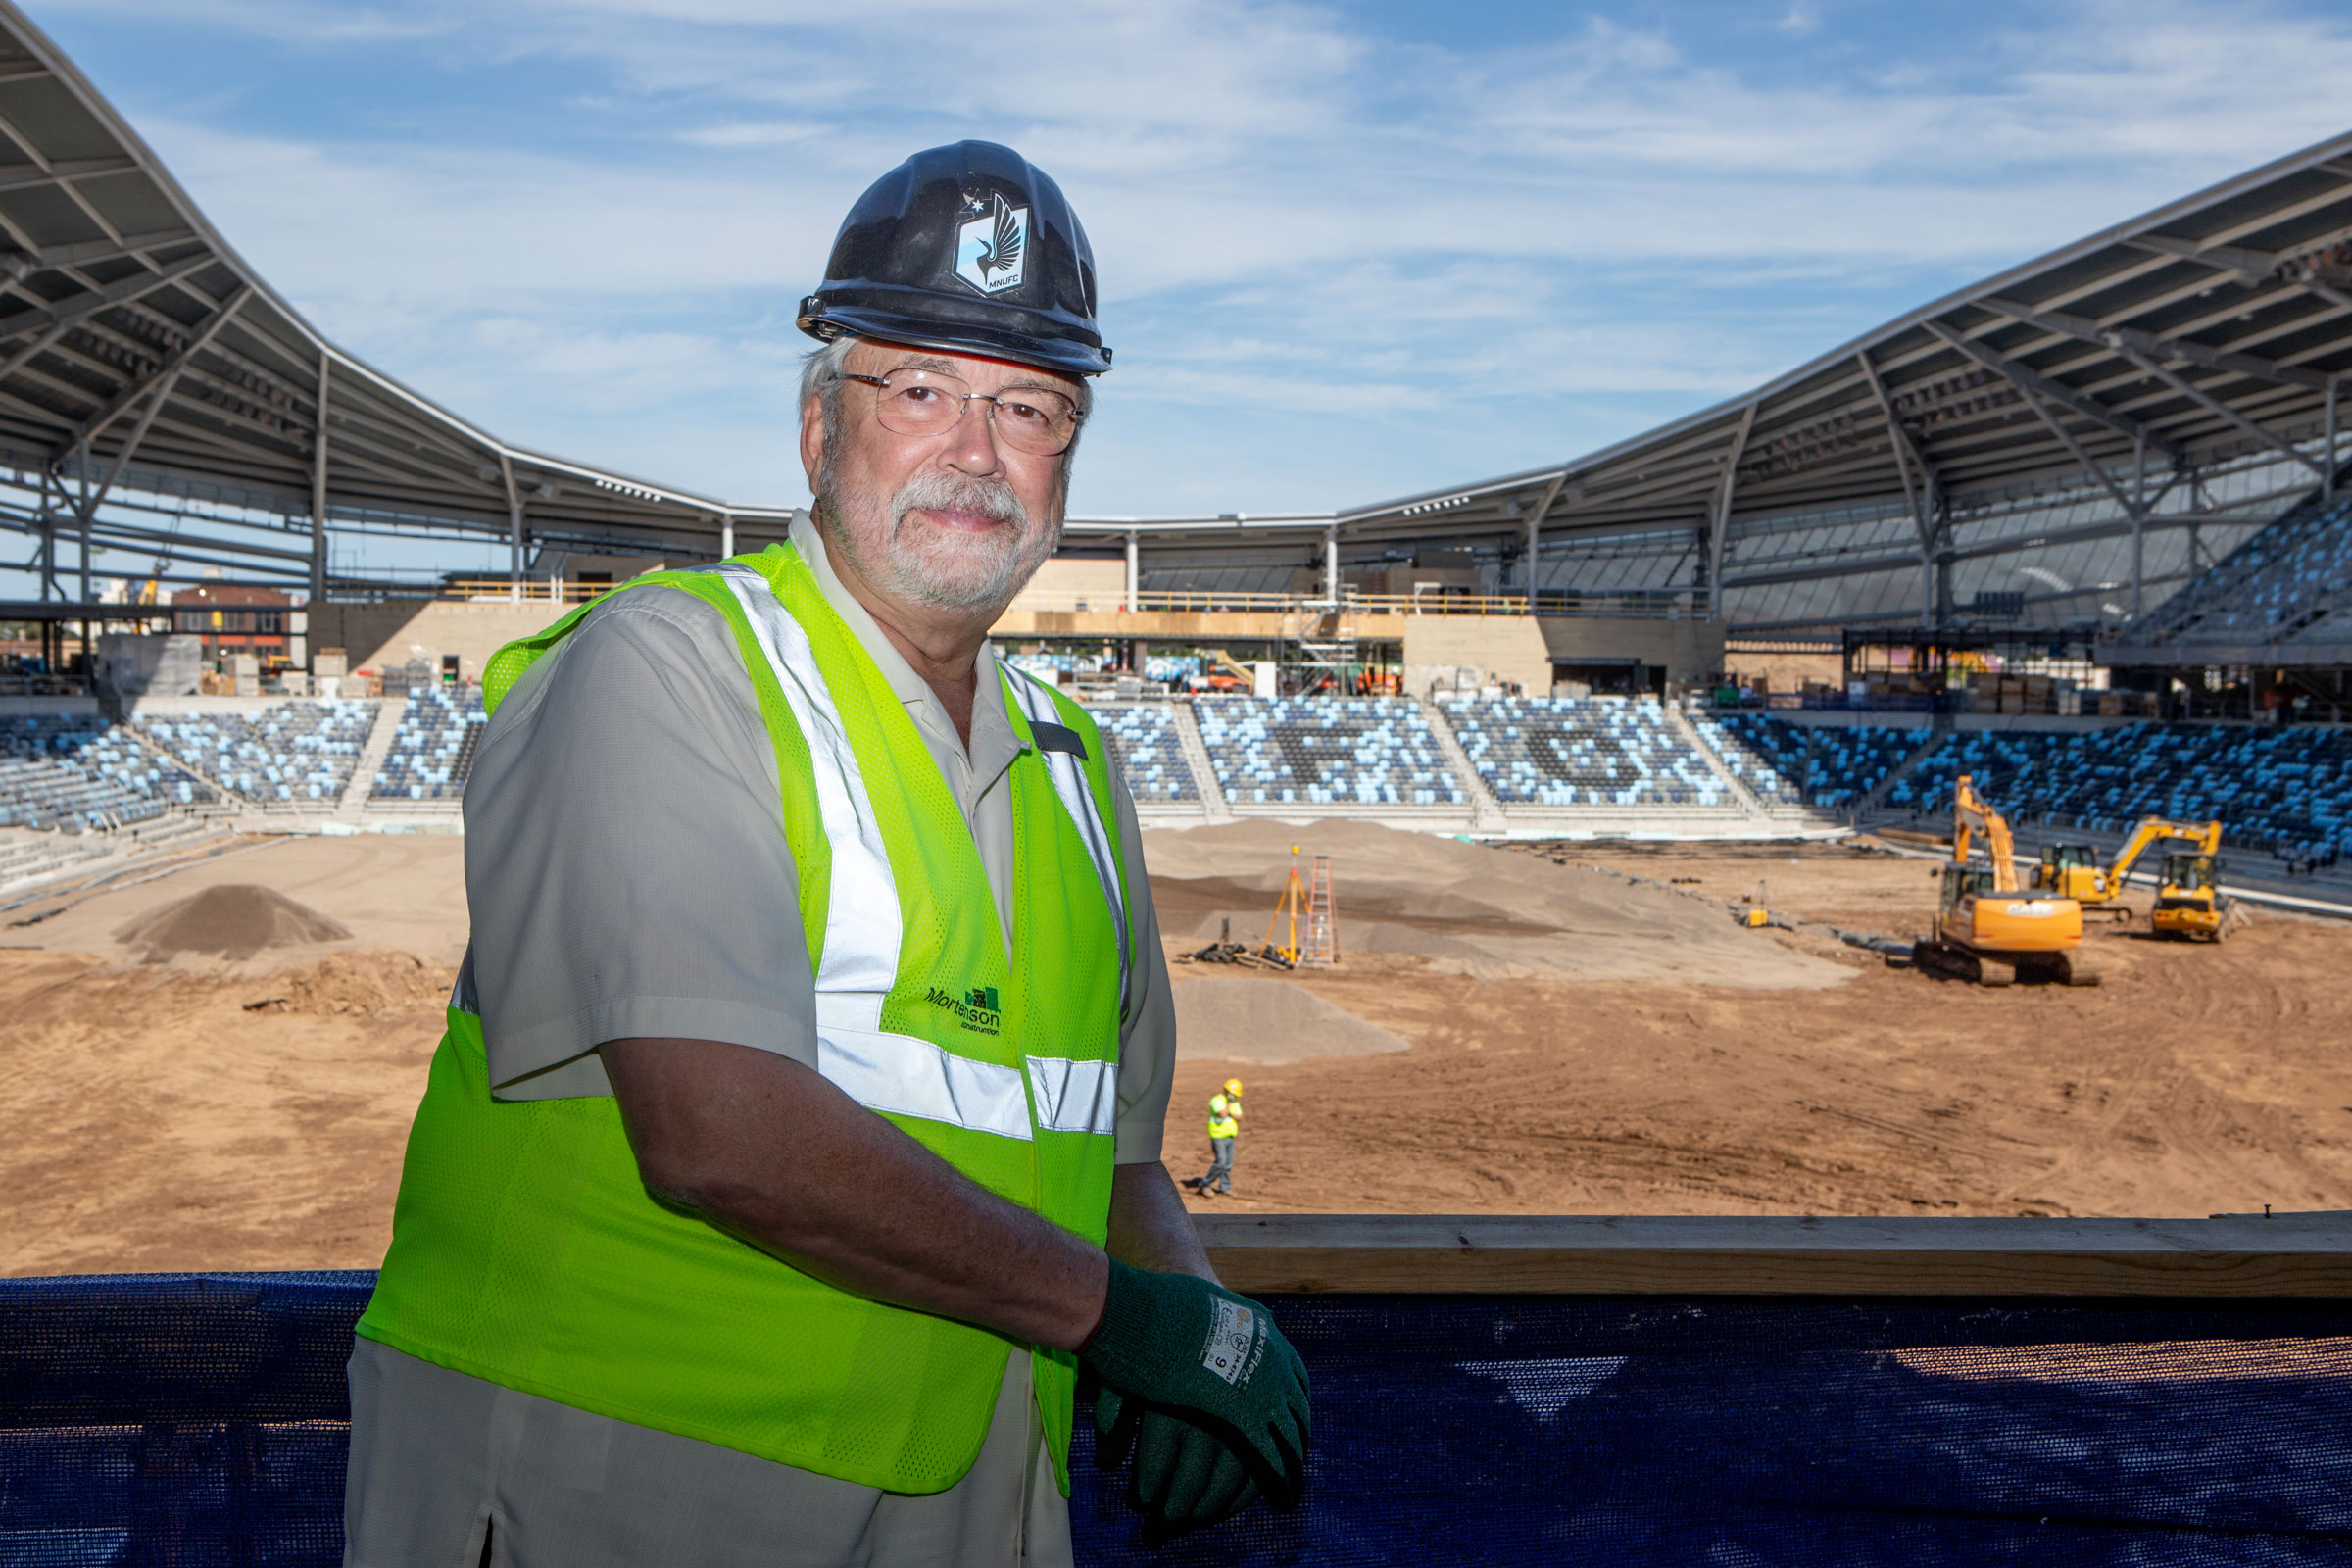 Bill McGuire, managing partner of Minnesota United FC, has taken birds into consideration since he began hatching plans for Allianz Field three years ago. In September construction was more than 80 percent complete. Camilla Cerea/Audubon